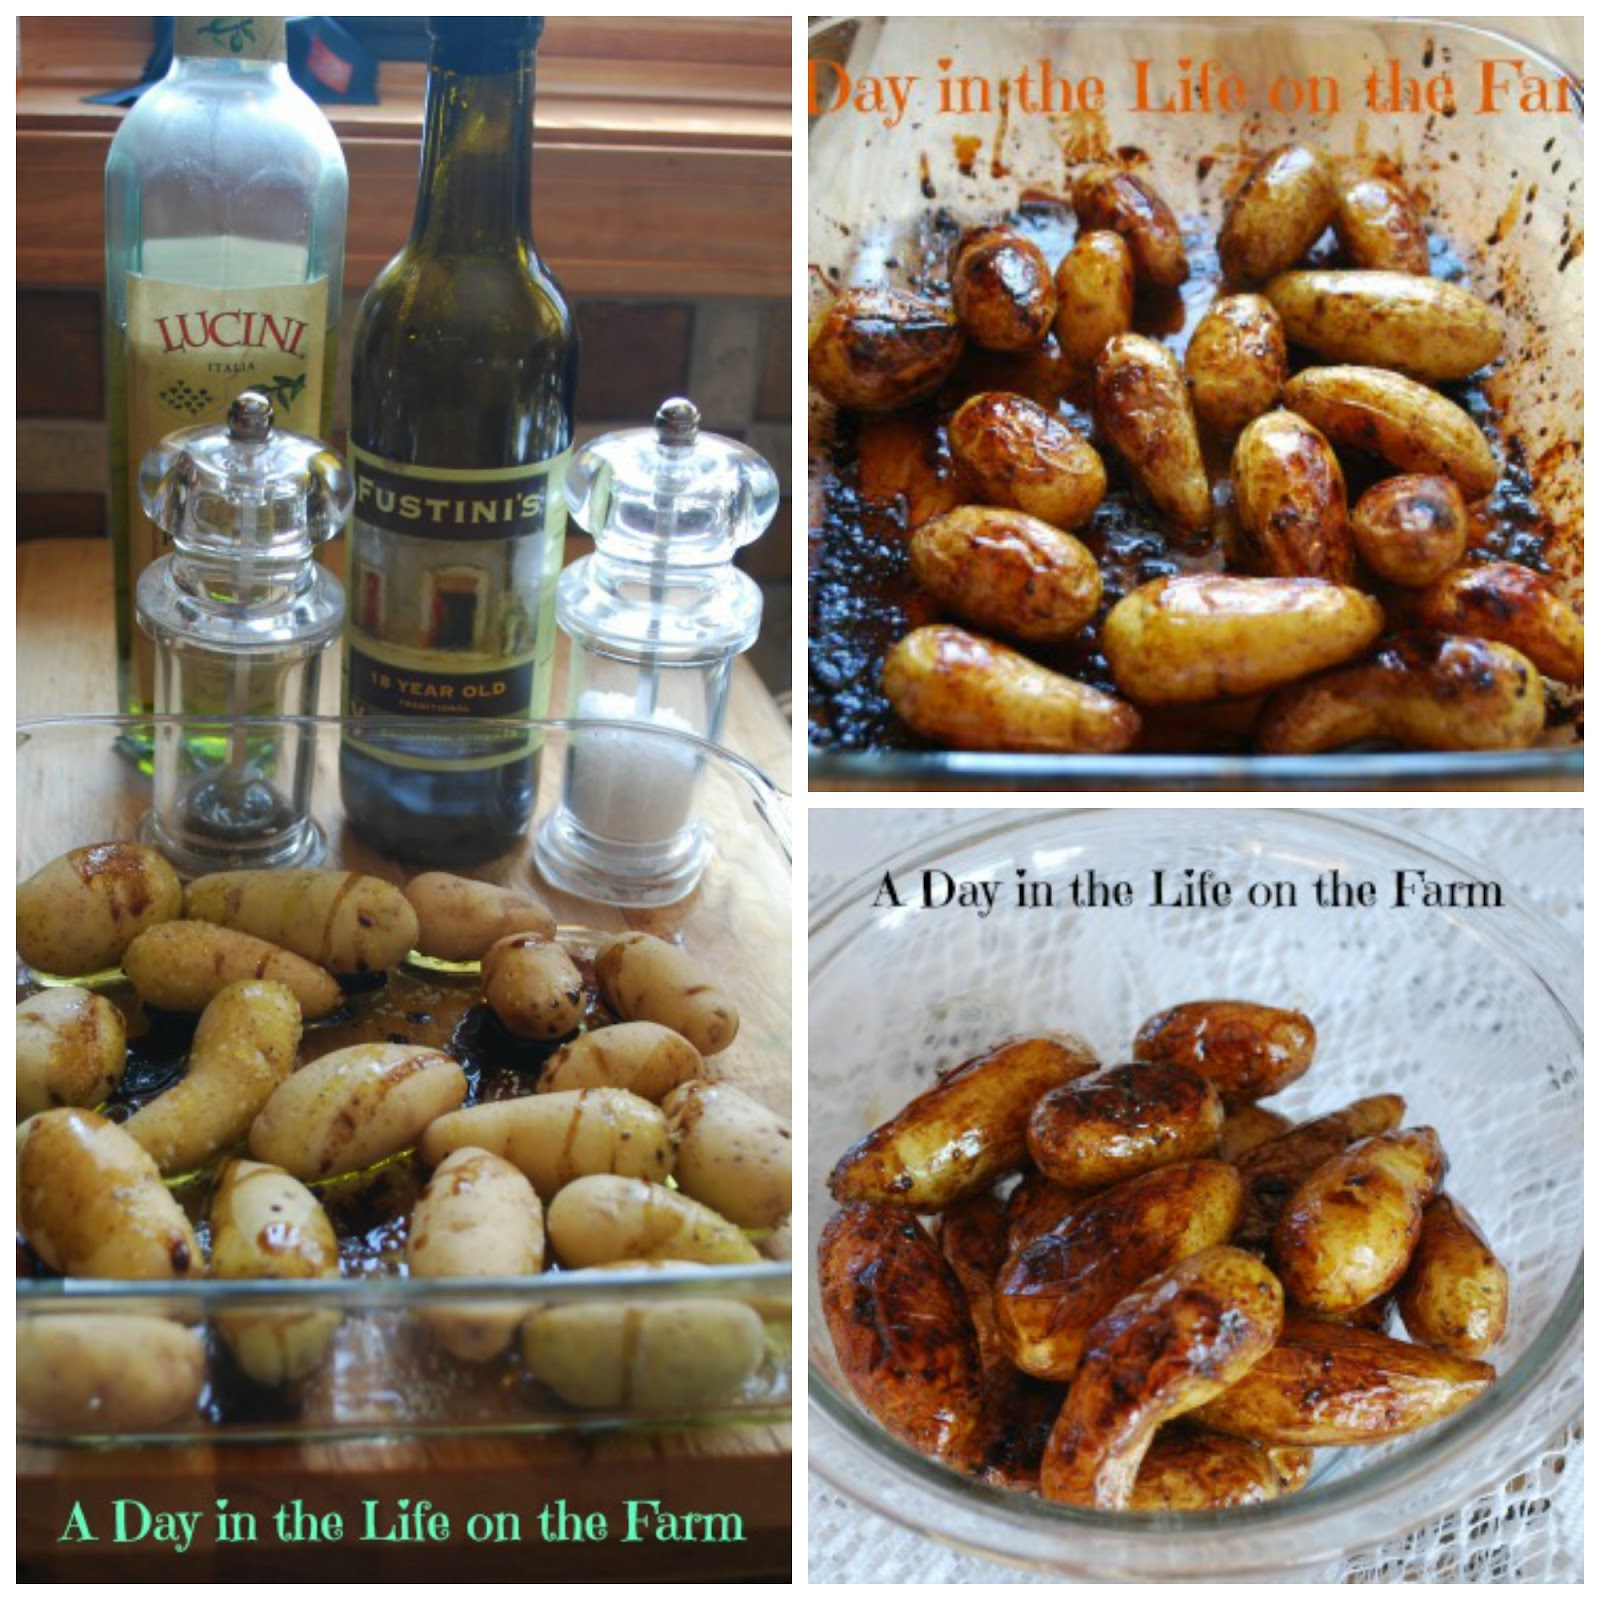 ... on the Farm: Balsamic Roasted Fingerling Potatoes for #Blogger CLUES